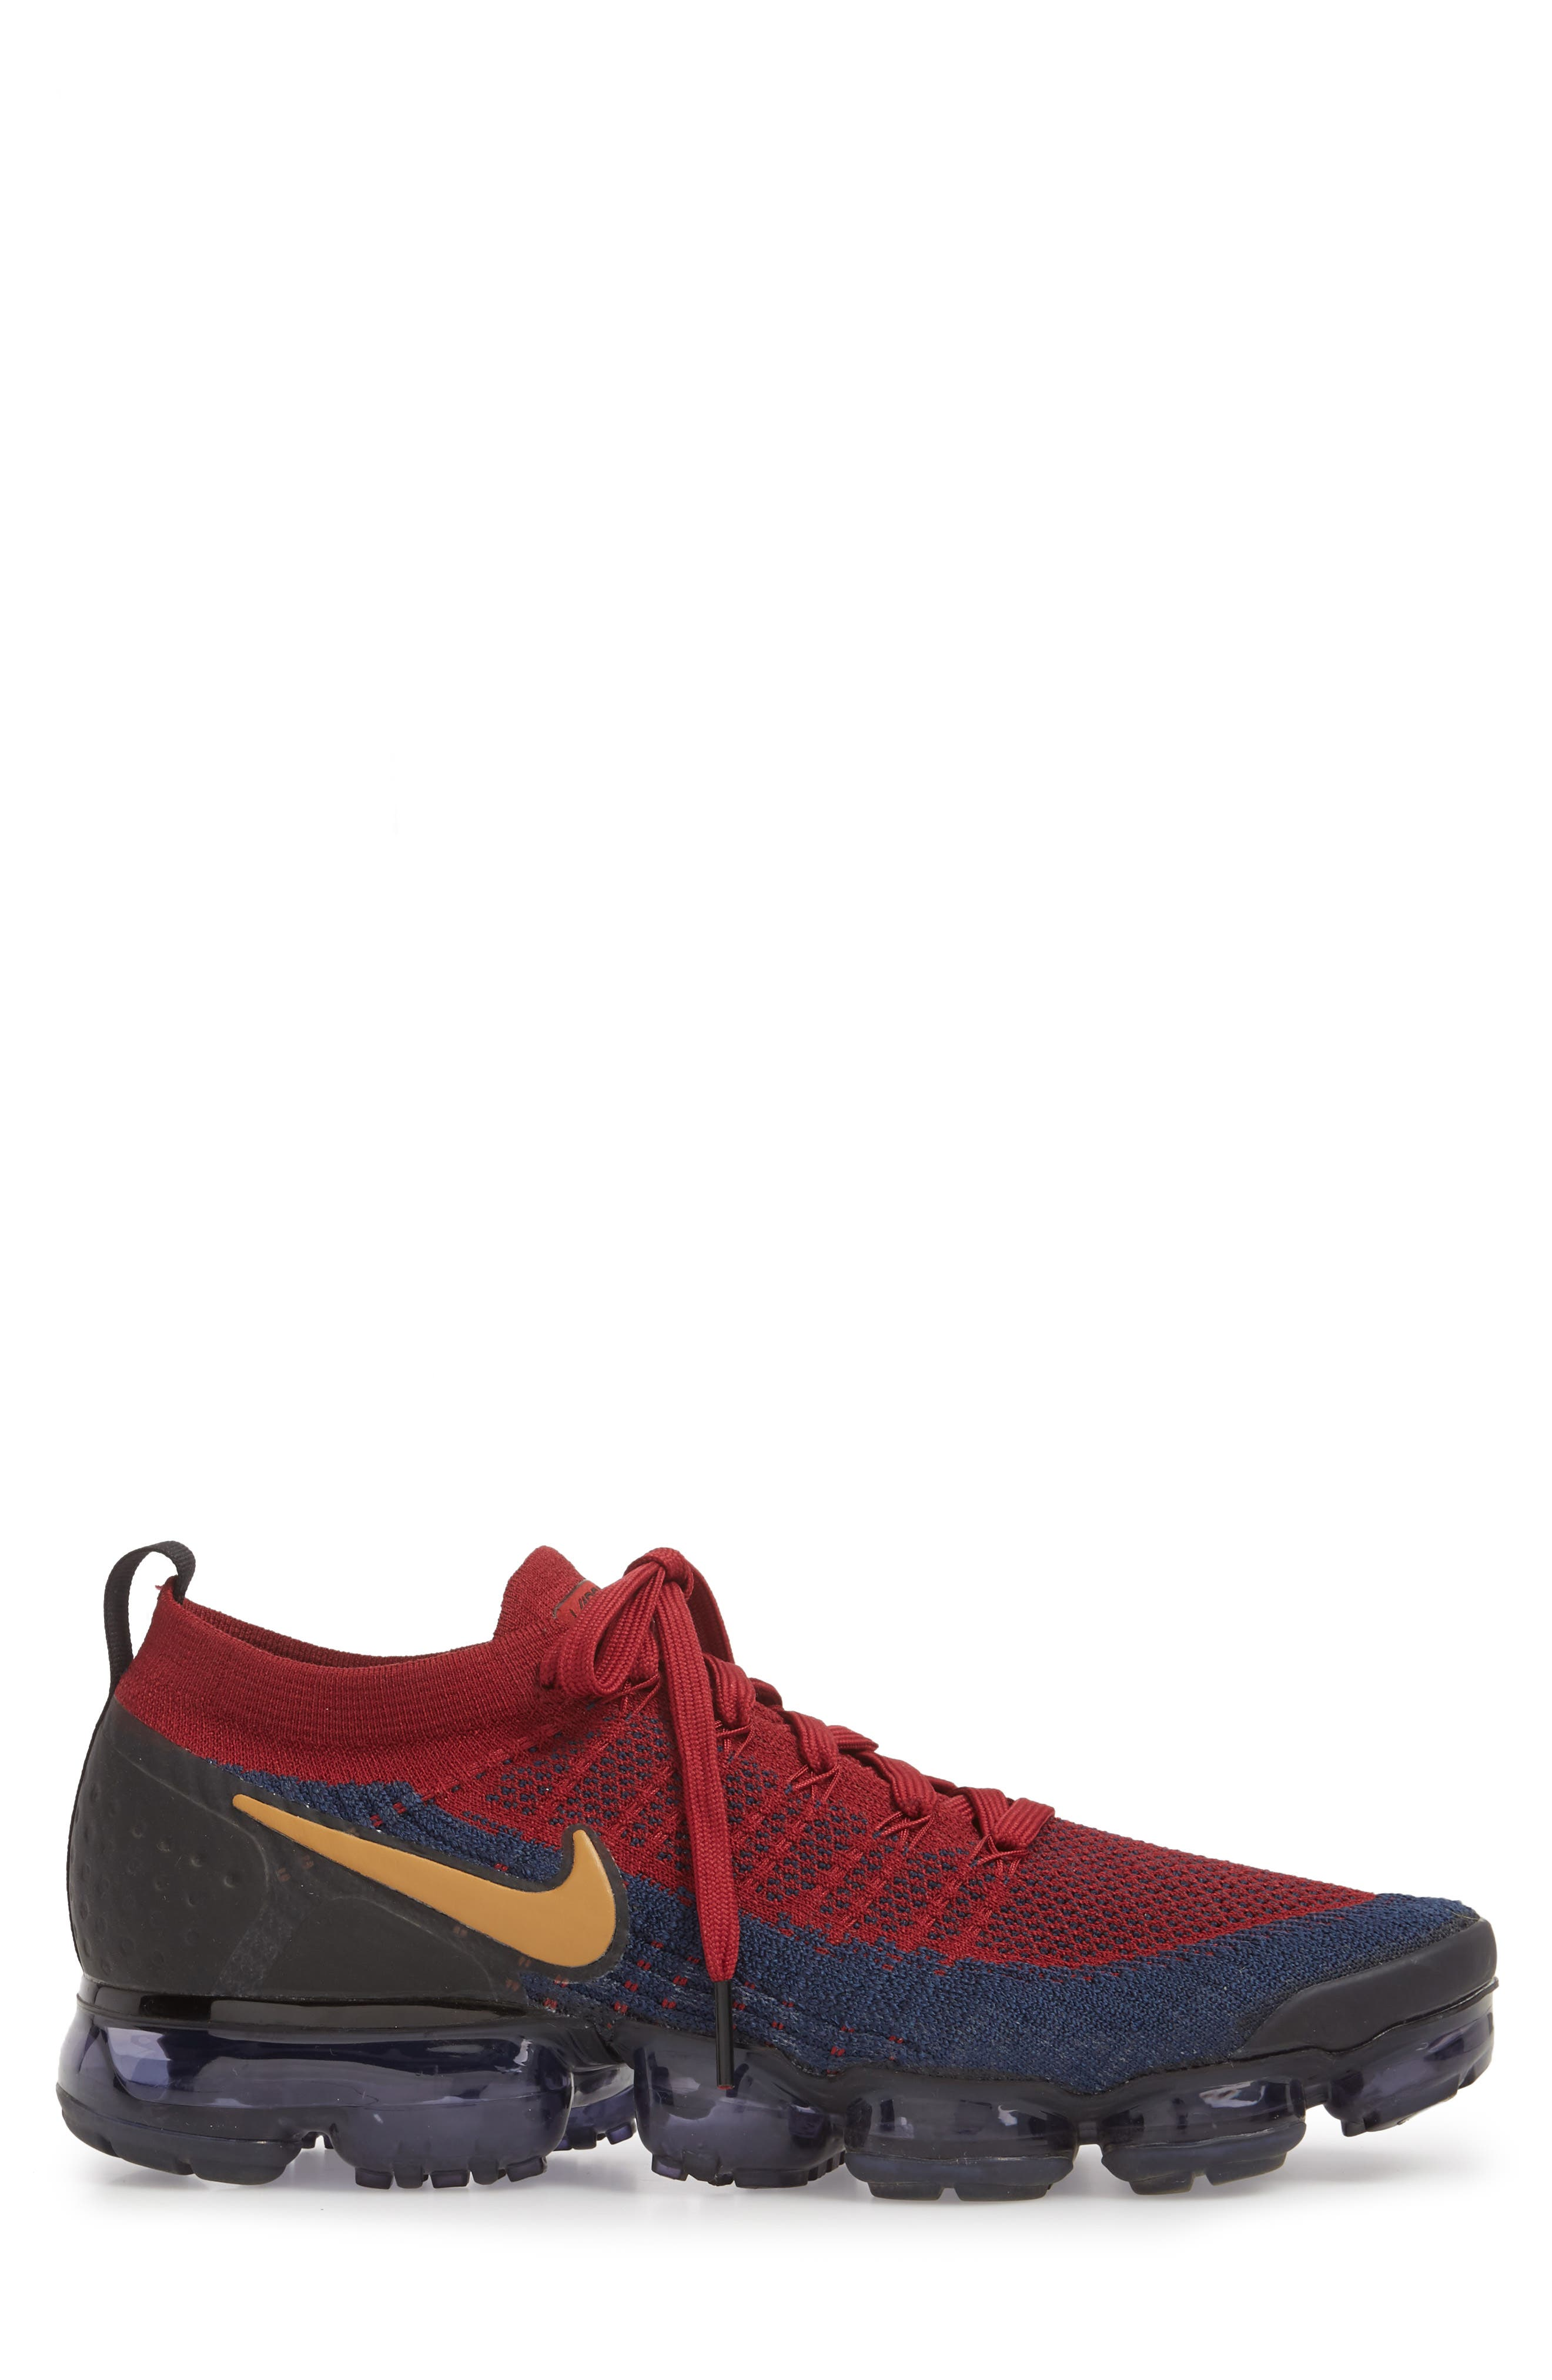 Air Vapormax Flyknit 2 Running Shoe,                             Alternate thumbnail 3, color,                             Team Red/ Wheat/ Obsidian